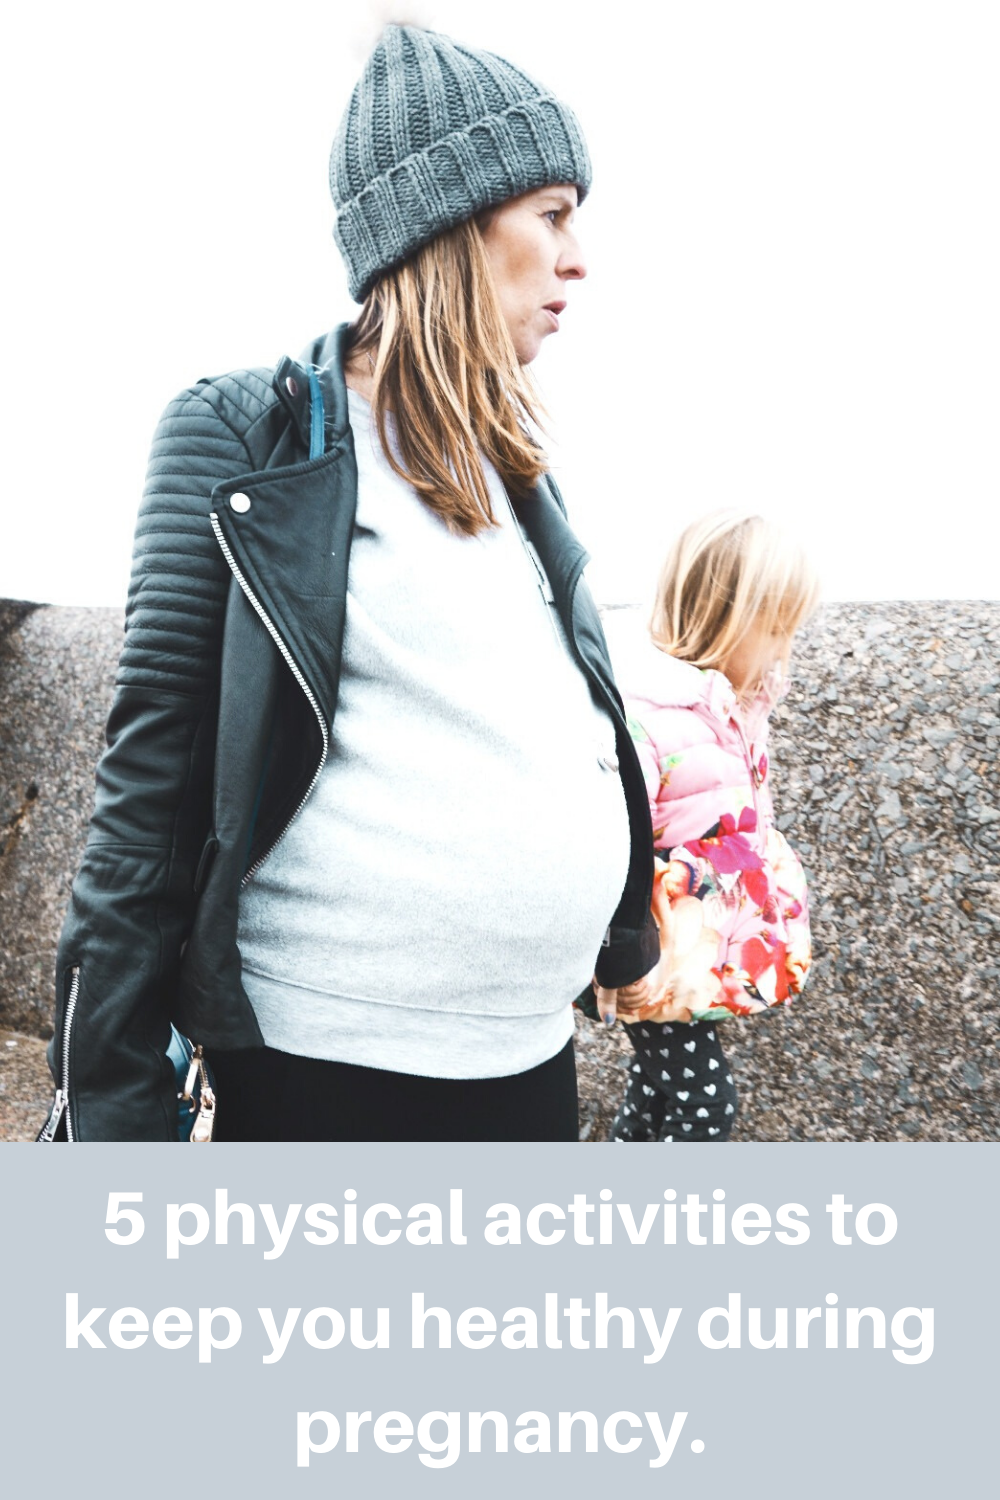 5 physical activities to keep you healthy during pregnancy.